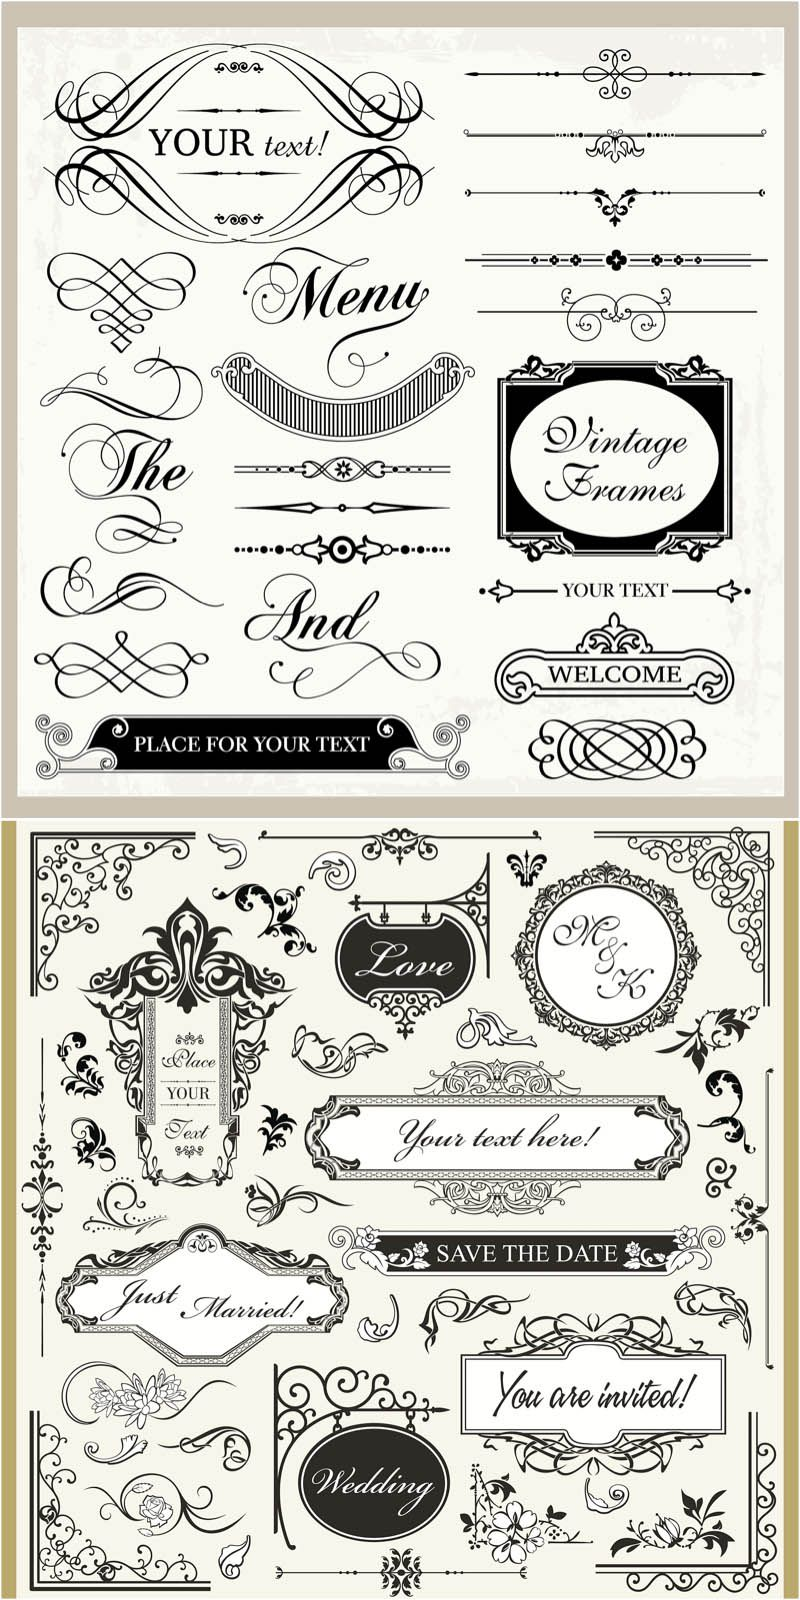 Vintage wedding ornaments vector wedding inspiration pinterest vintage wedding ornaments vector junglespirit Images